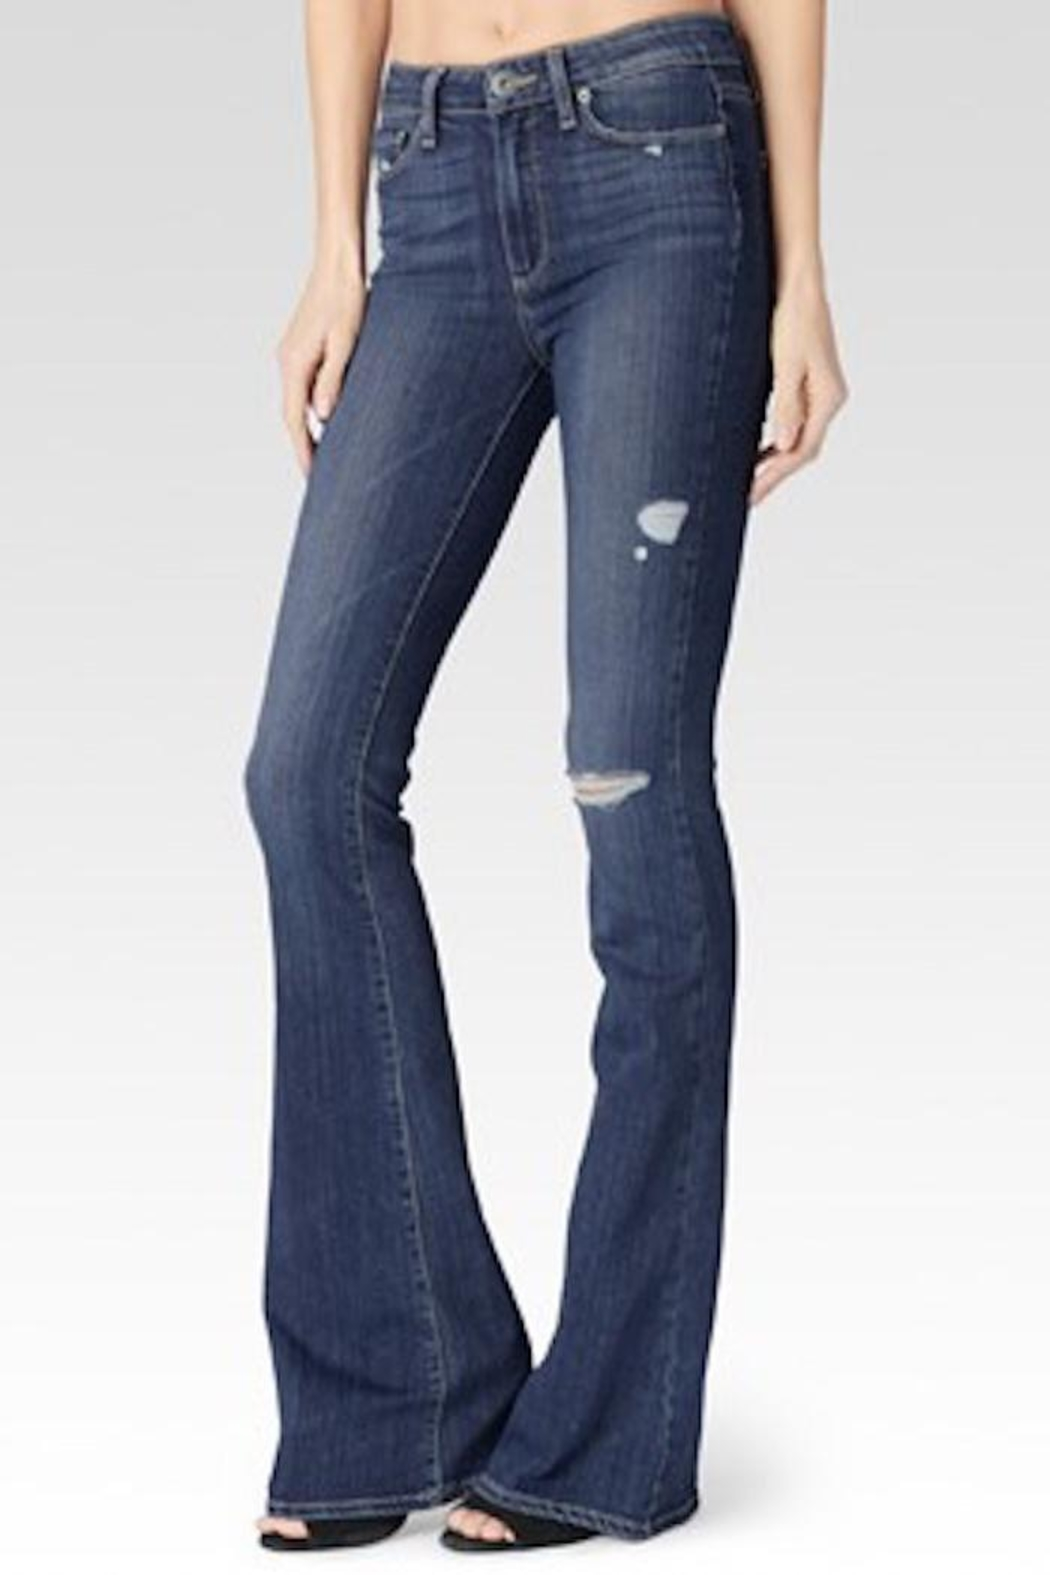 Paige Denim Distressed Flared Jeans - Main Image